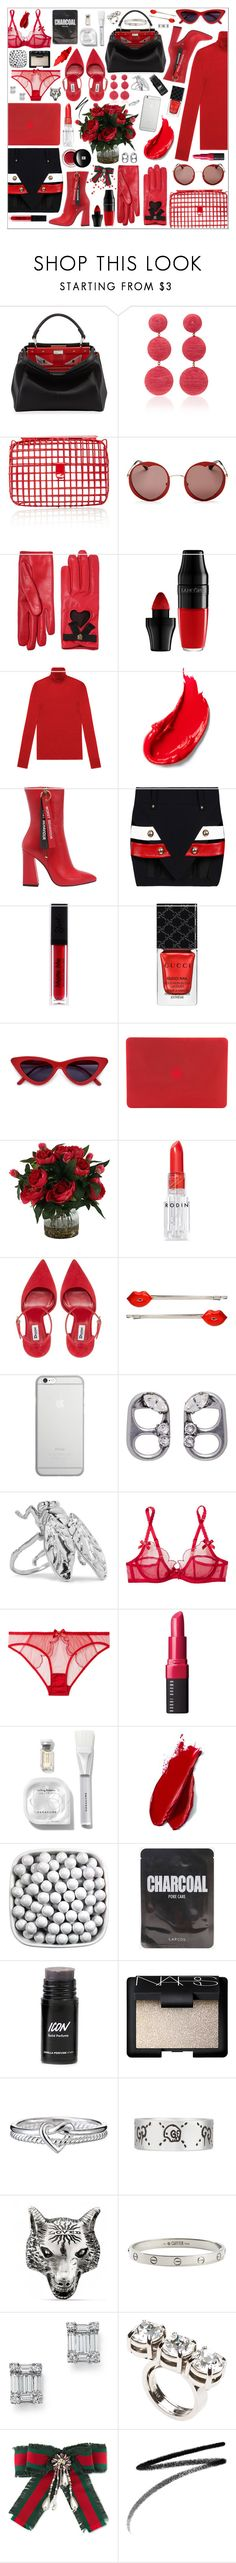 """Red Hot"" by cherieaustin ❤ liked on Polyvore featuring Fendi, Rebecca de Ravenel, Anndra Neen, Kate Spade, Gucci, Lancôme, Estée Lauder, Havva, Anthony Vaccarello and Tucano"